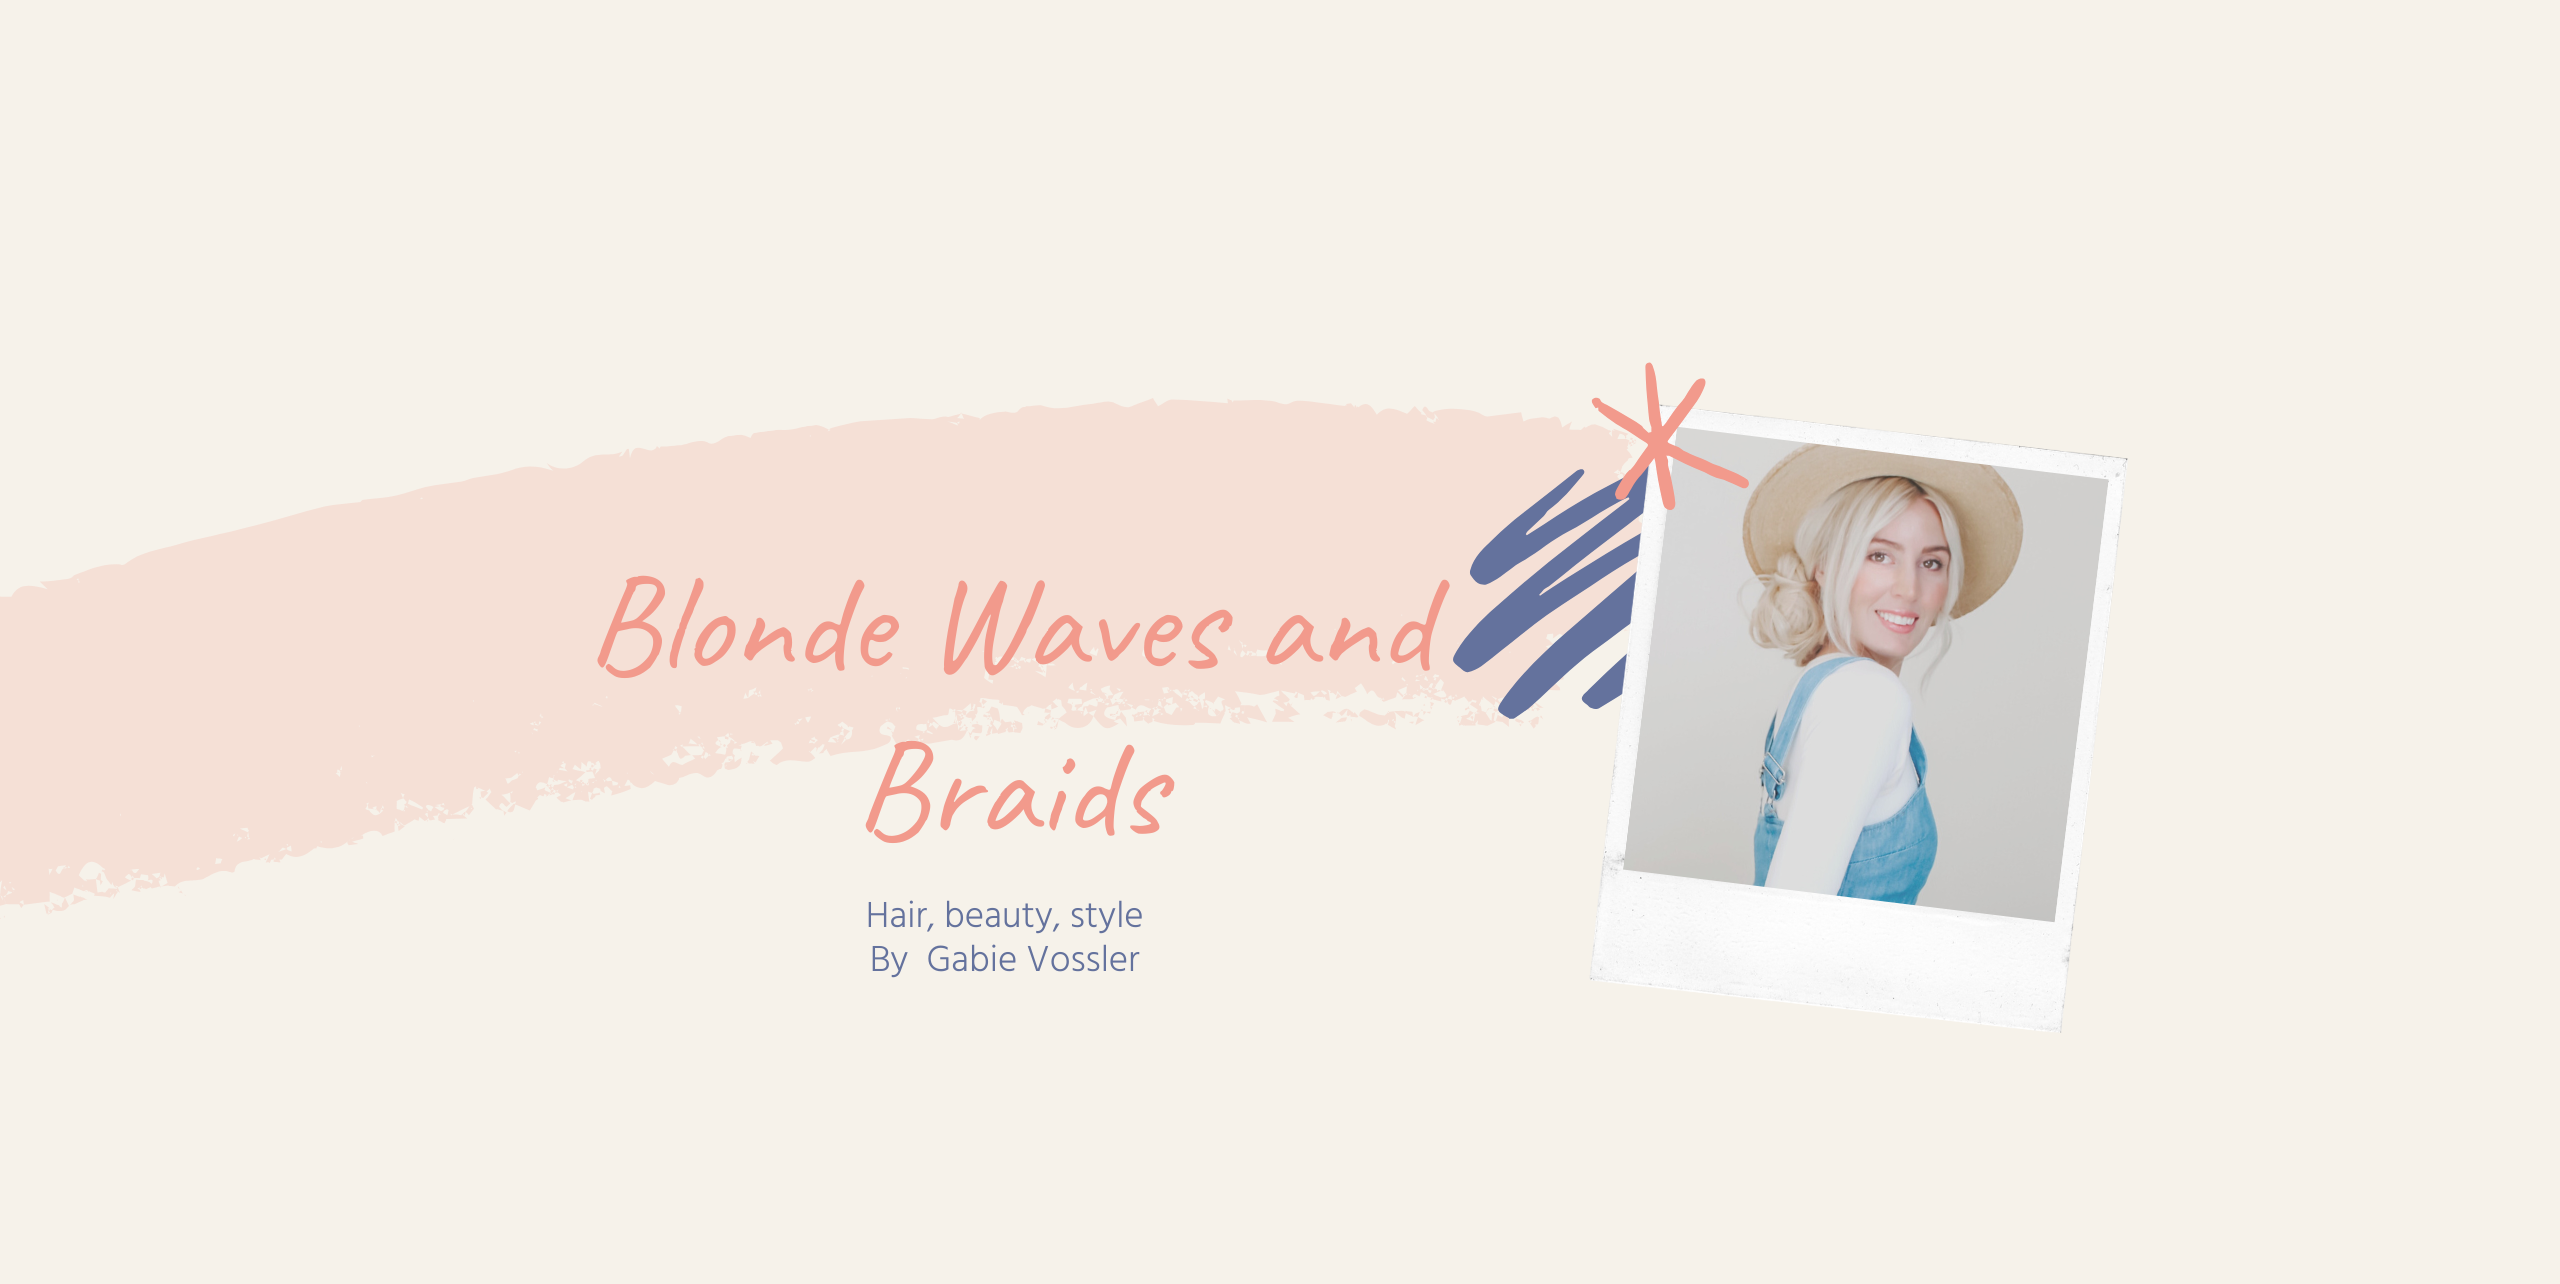 Blonde Waves and Braids